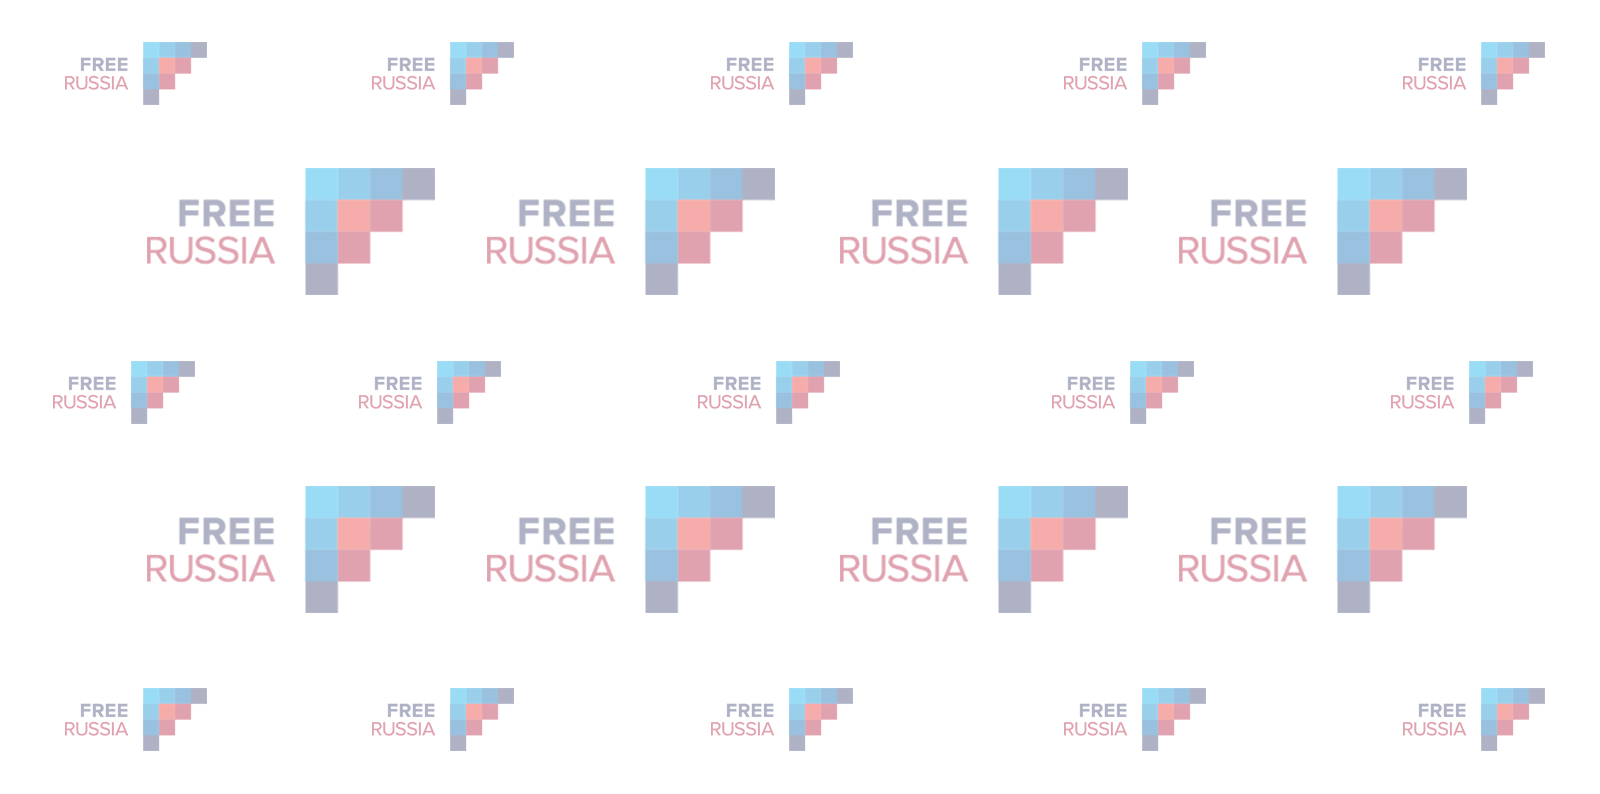 Free Russia - 2015